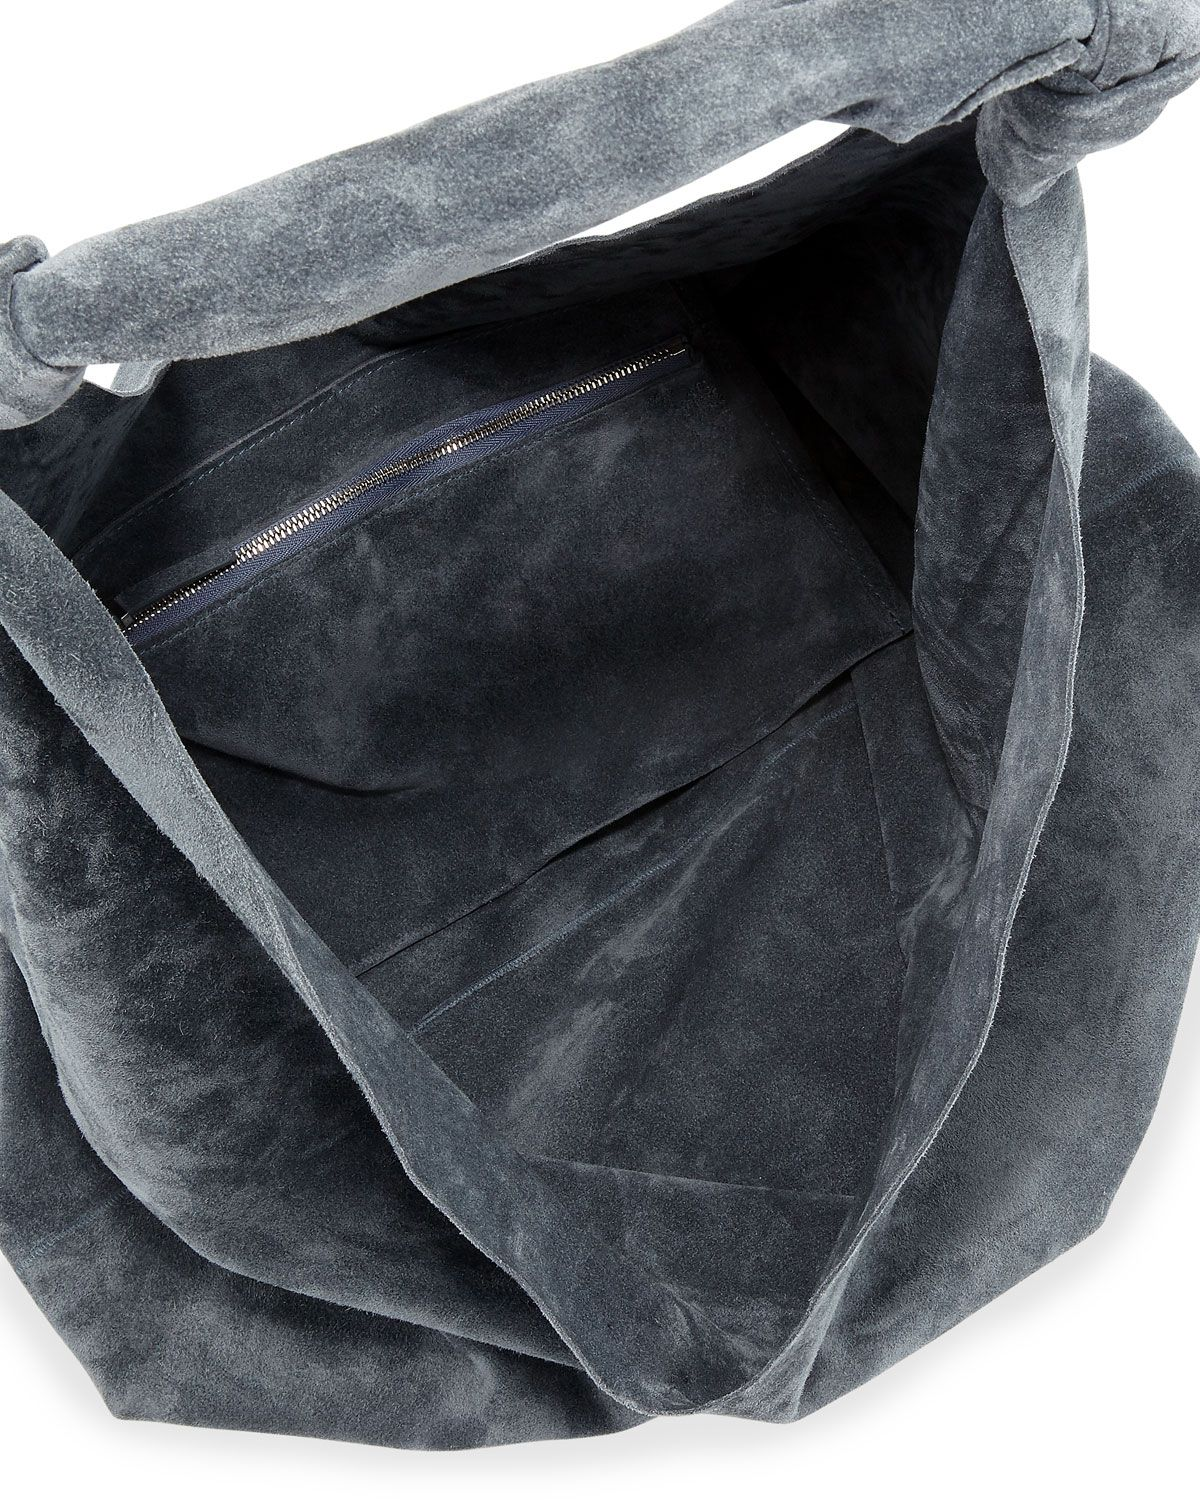 929a63d7b5c9 The Row Bindle Double-Knots Suede Hobo Bag